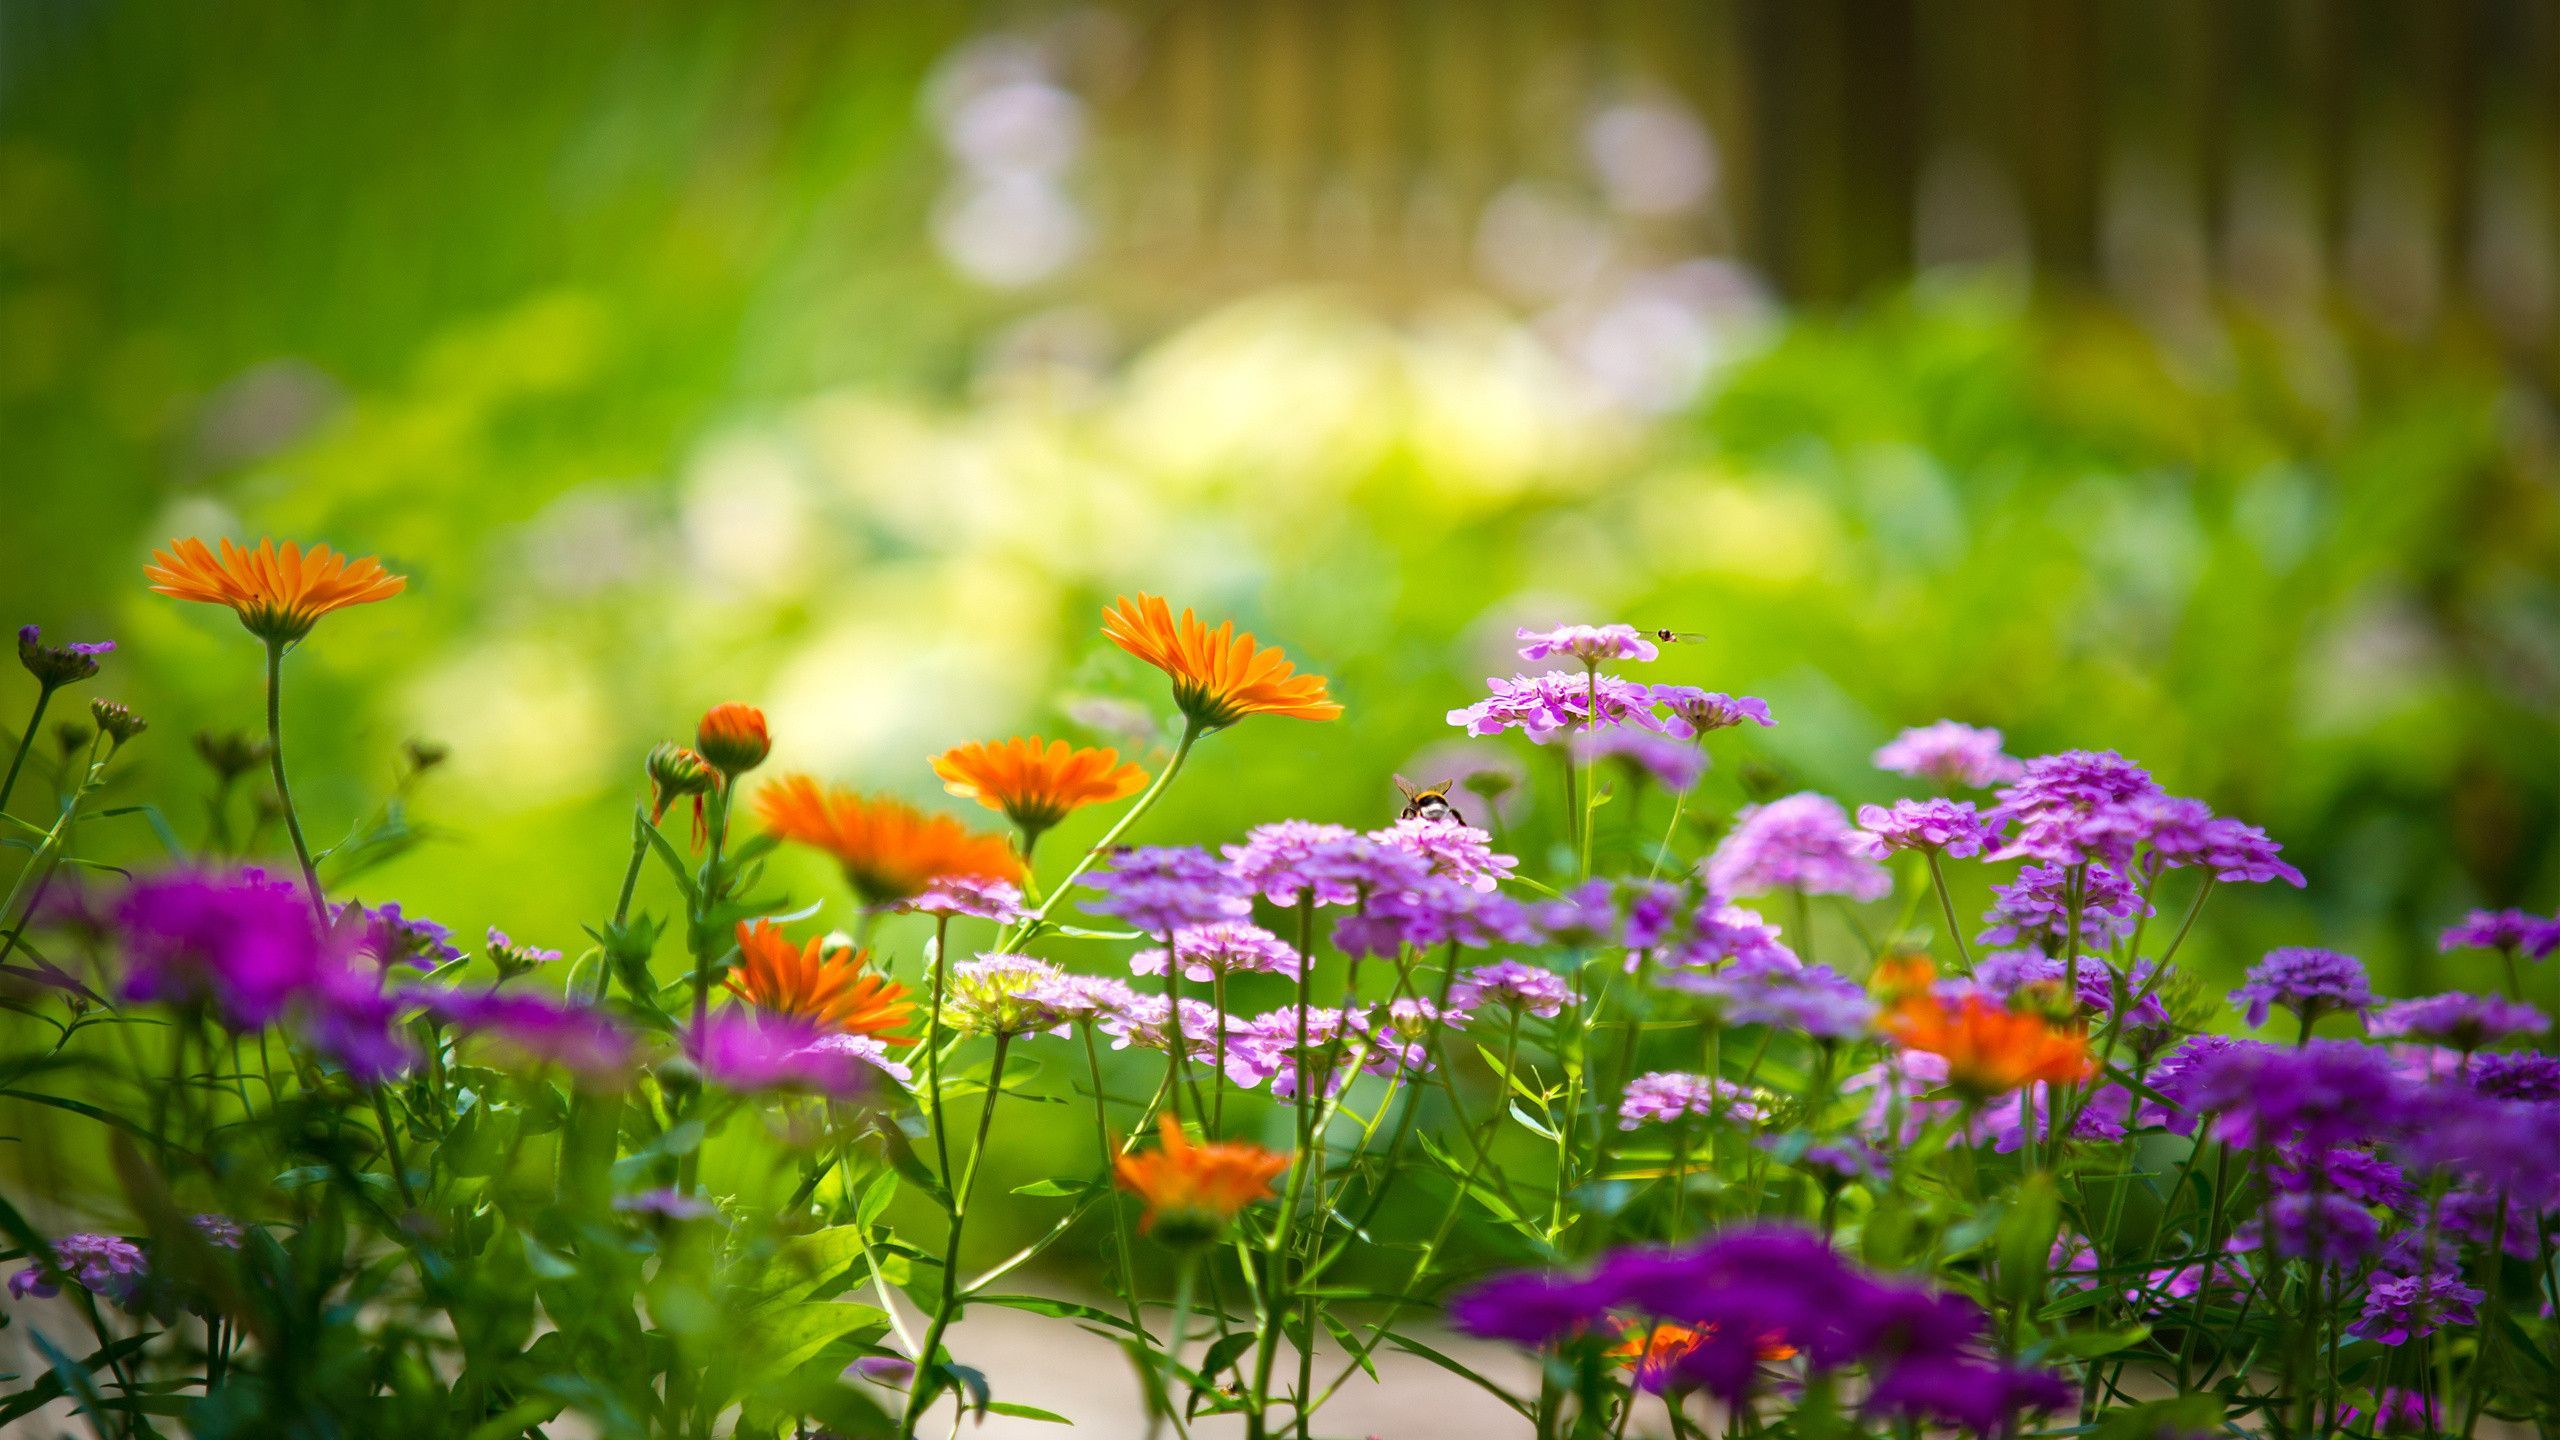 Flower Garden Backgrounds PromotionShop for Promotional Flower 2560x1440